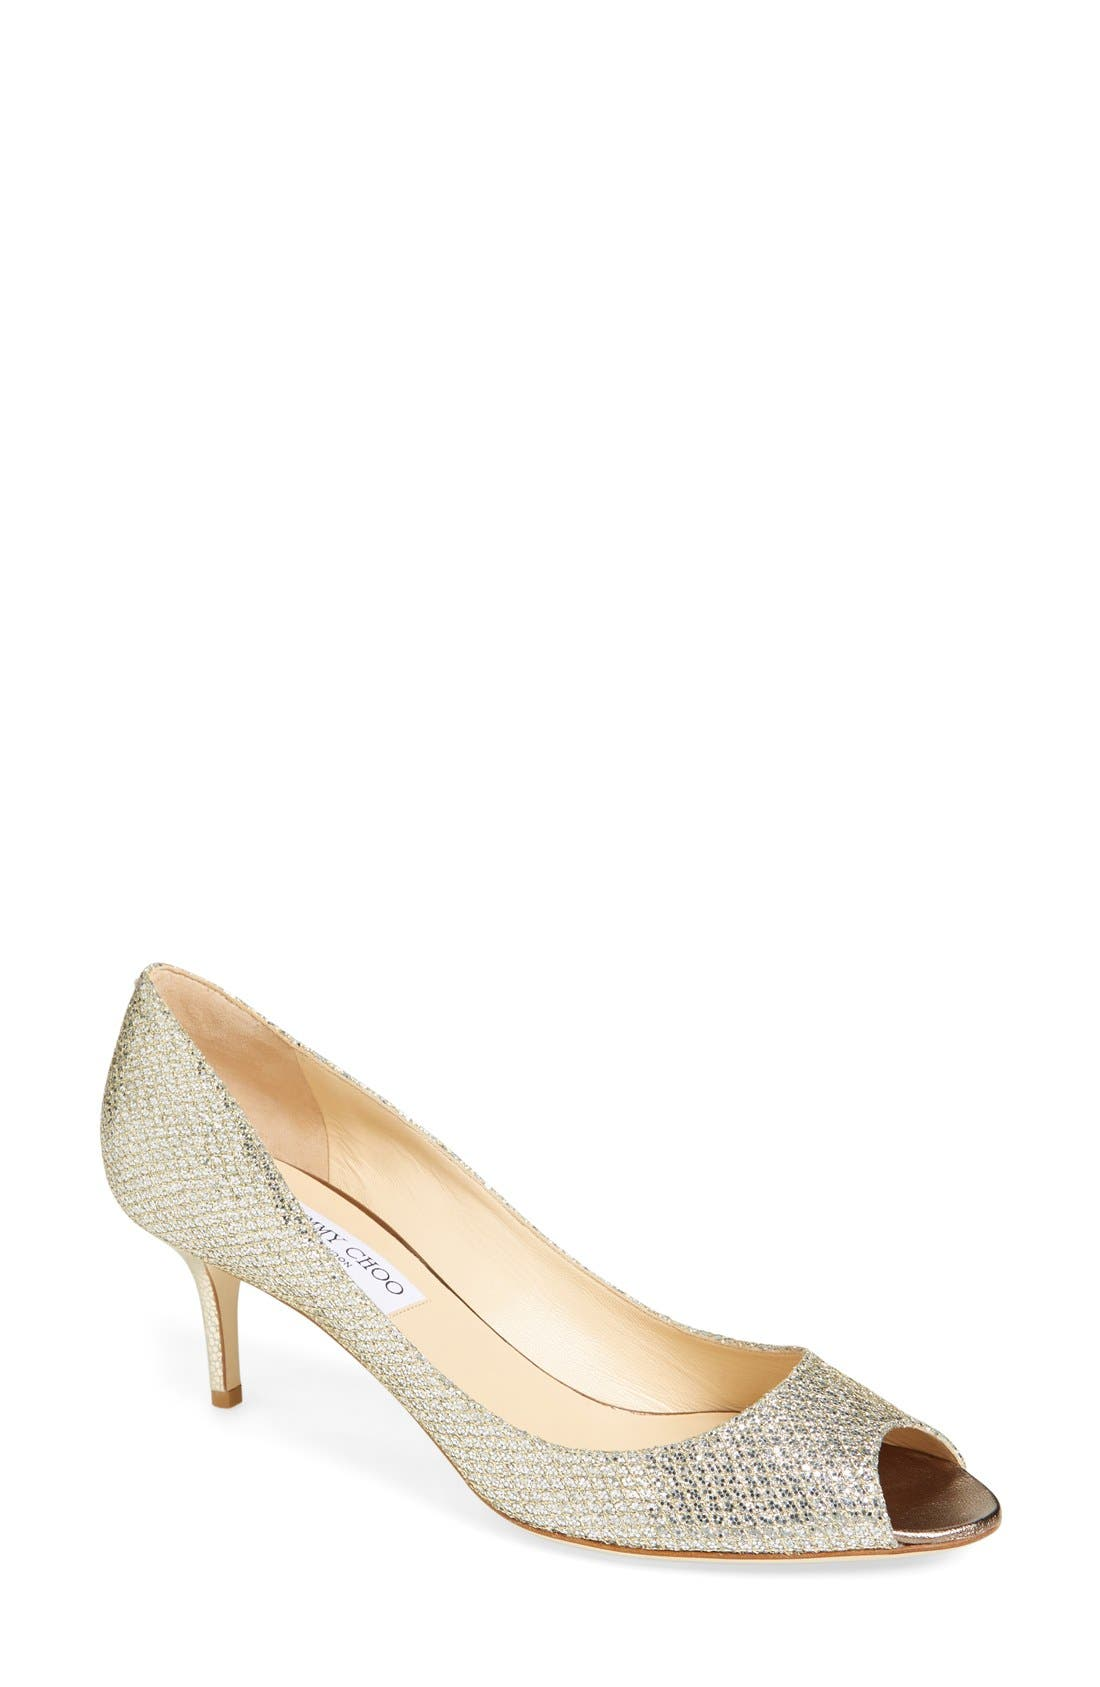 Main Image - Jimmy Choo 'Isabel' Pump